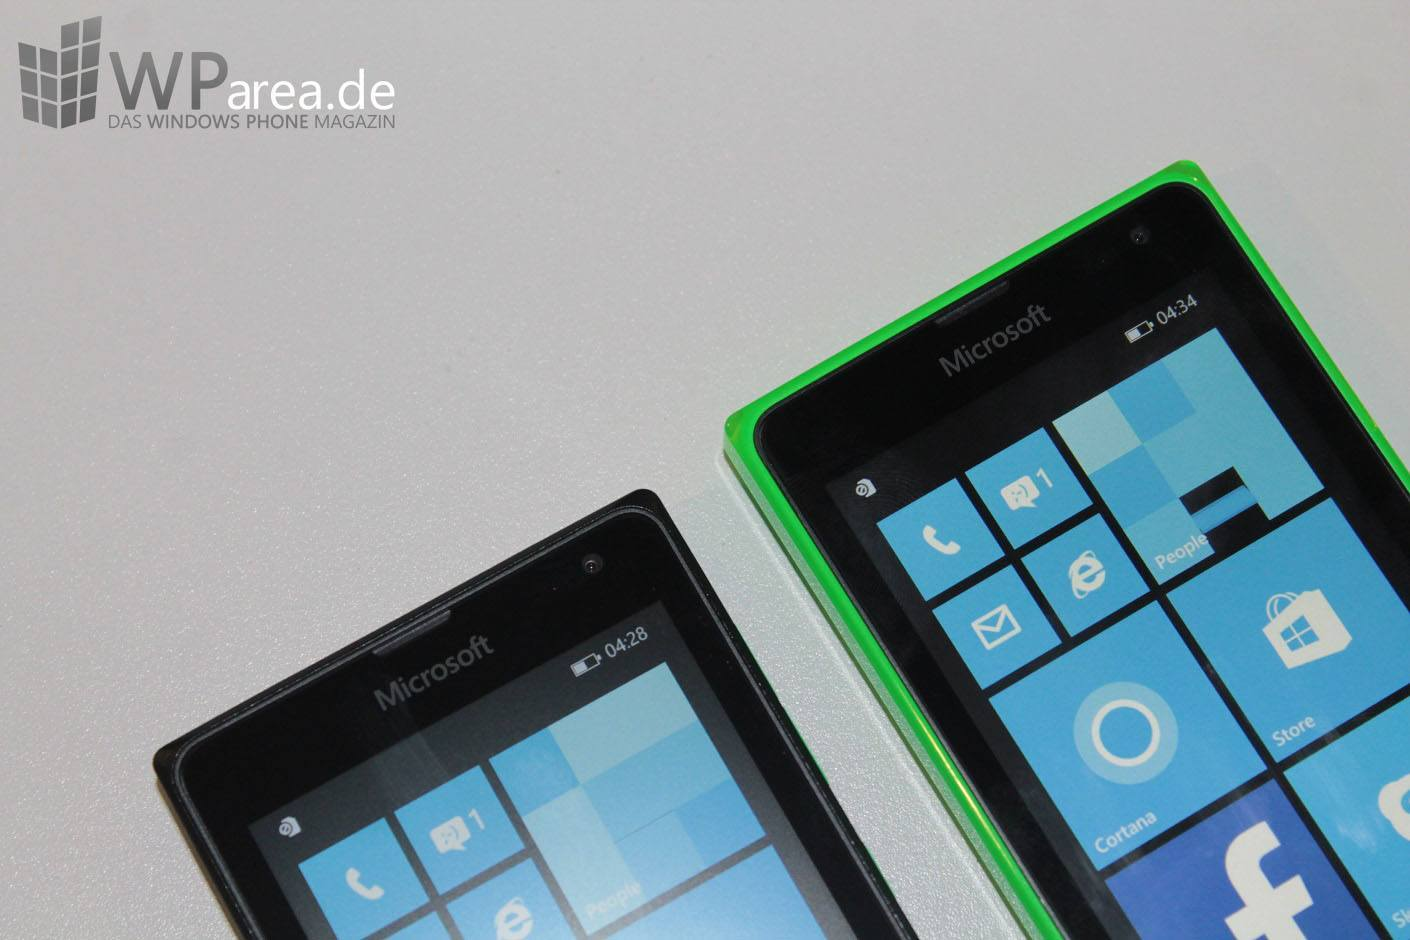 Microsoft Lumia 435 und Lumia 532 Hands On WParea.de